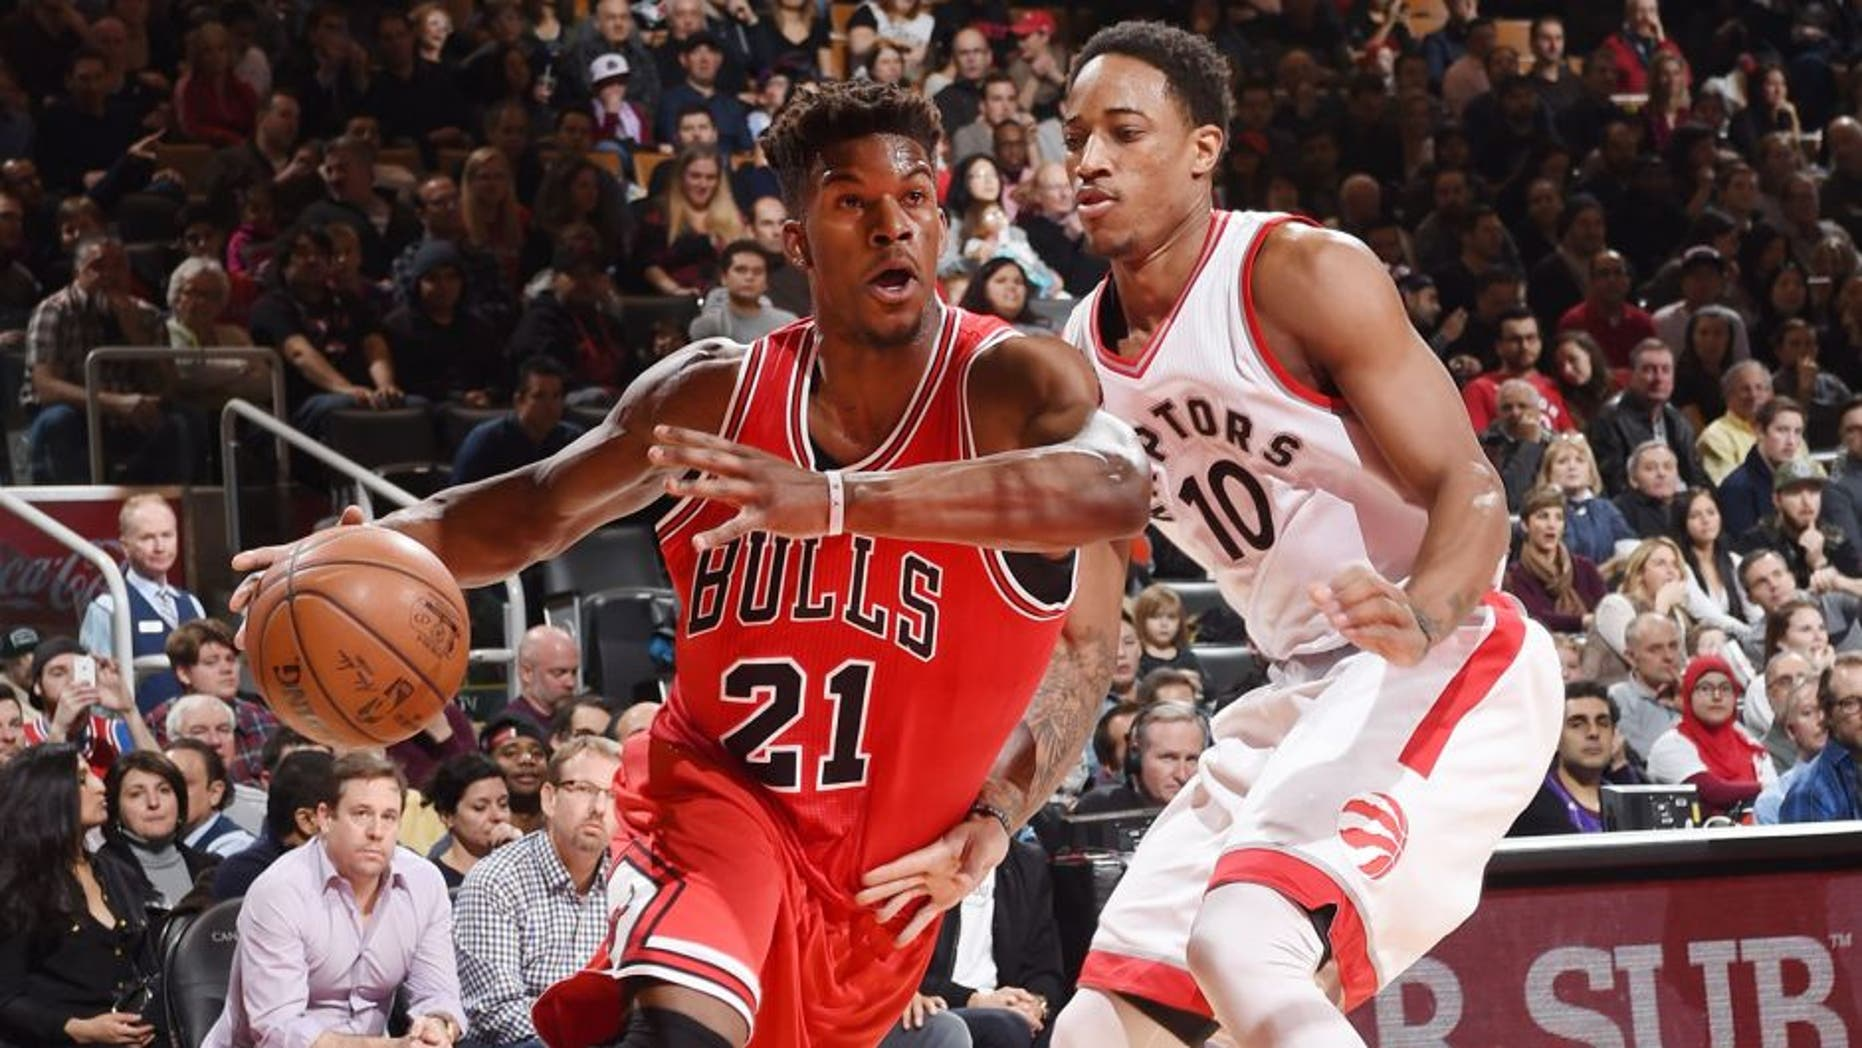 TORONTO, CA - JANUARY 3: Jimmy Butler #21 of the Chicago Bulls drives to the basket against the Toronto Raptors during the game on January 3, 2016 at Air Canada Centre in Toronto, Canada. NOTE TO USER: User expressly acknowledges and agrees that, by downloading and or using this Photograph, user is consenting to the terms and conditions of the Getty Images License Agreement. Mandatory Copyright Notice: Copyright 2016 NBAE (Photo by Ron Turenne/NBAE via Getty Images)